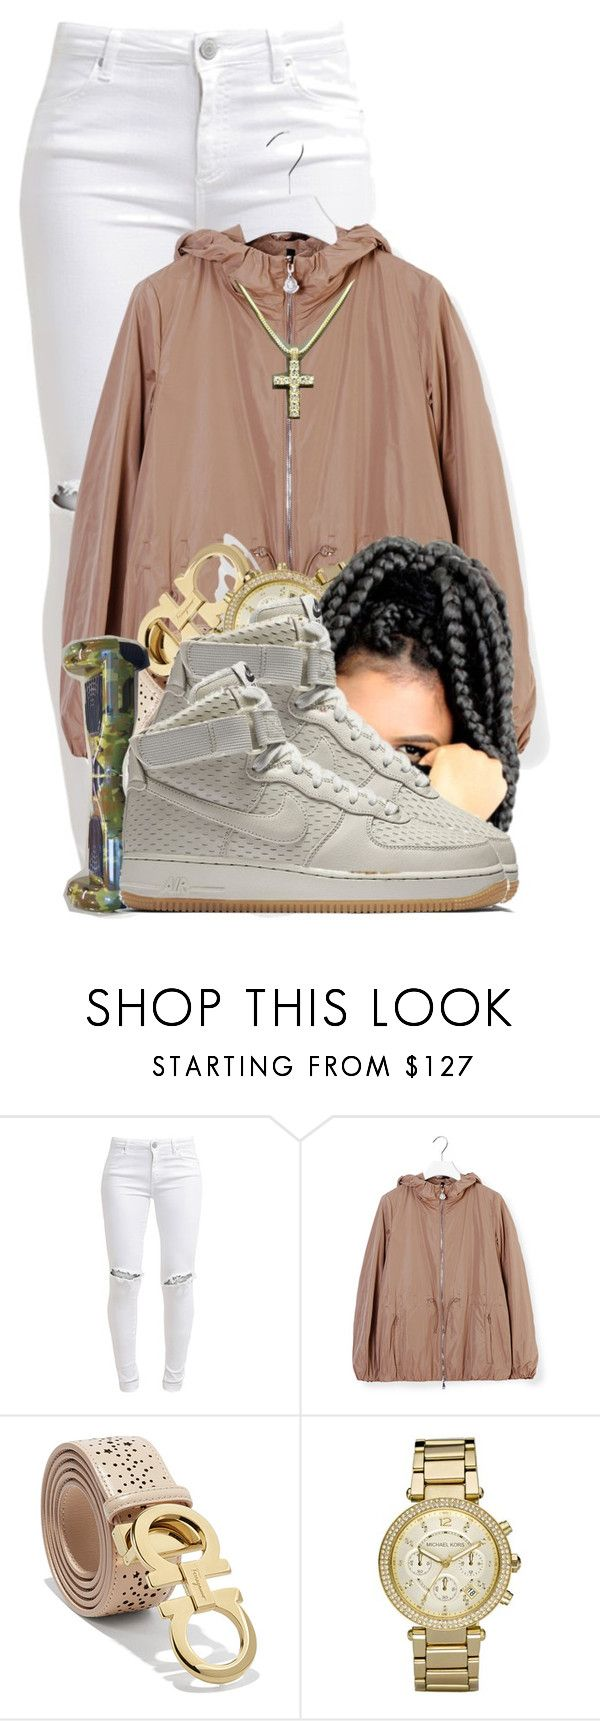 """Trap House 3"" by aniahrhichkhidd ❤ liked on Polyvore featuring FiveUnits, Moncler, Salvatore Ferragamo, Michael Kors and NIKE"